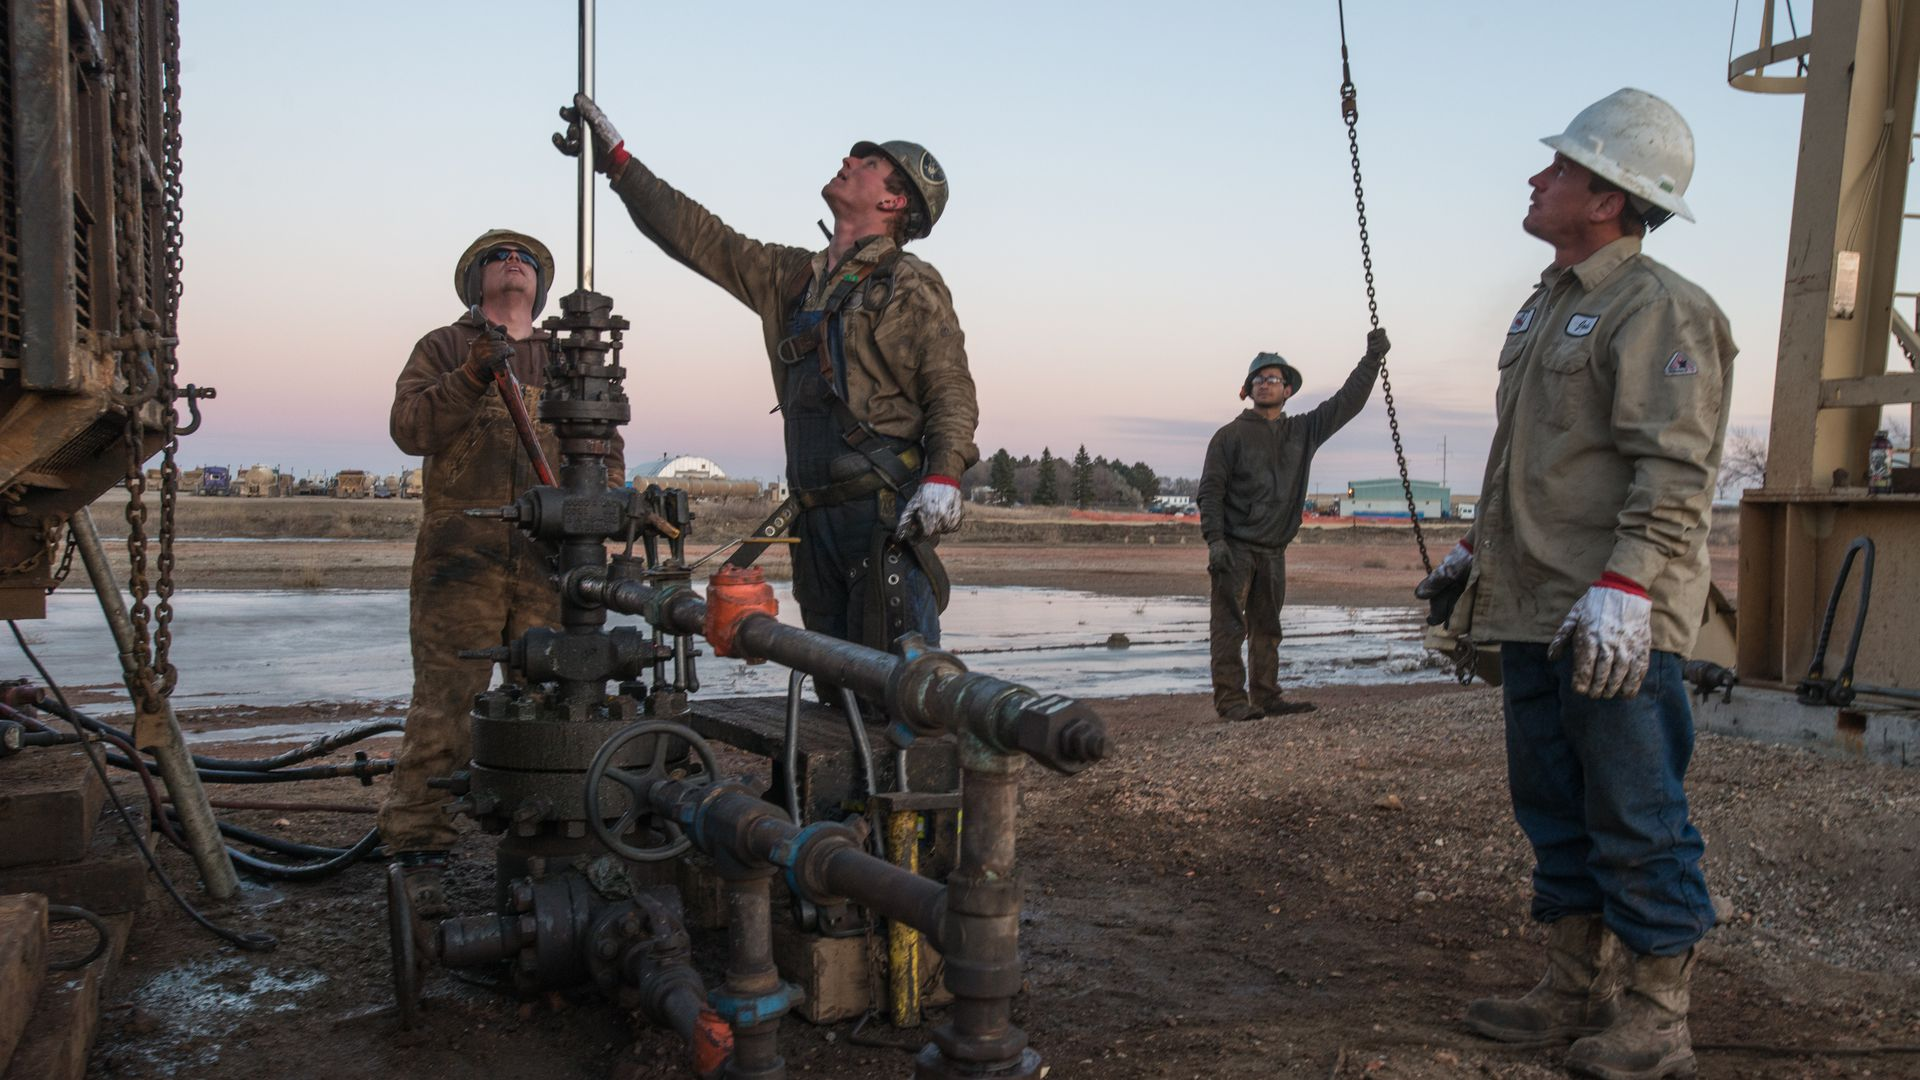 Three oil workers at a fracking site in North Dakota